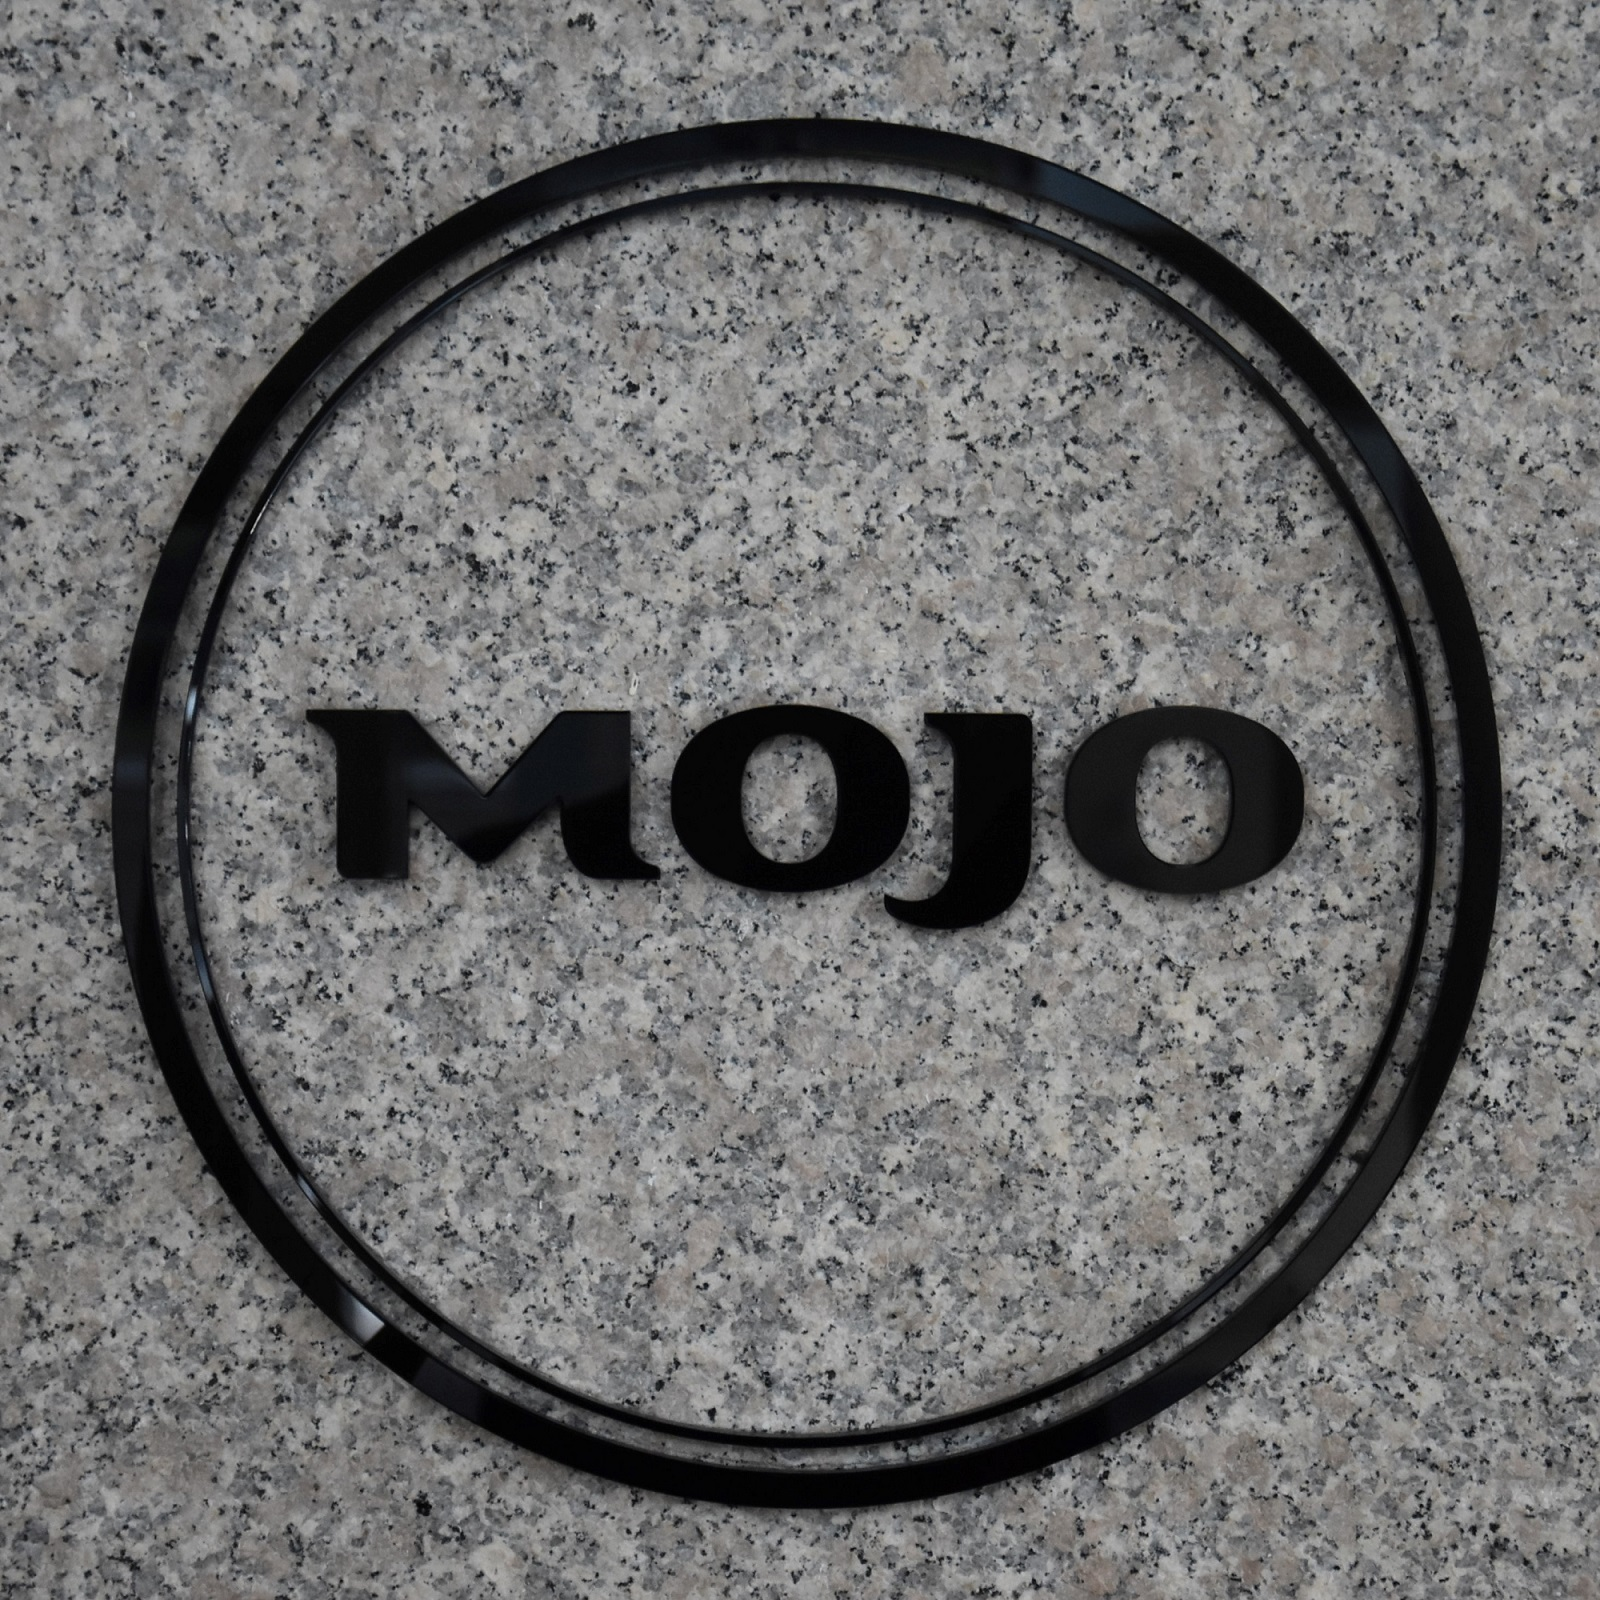 The Mojo logo from the wall of its first Chicago branch, 200 South Wacker.